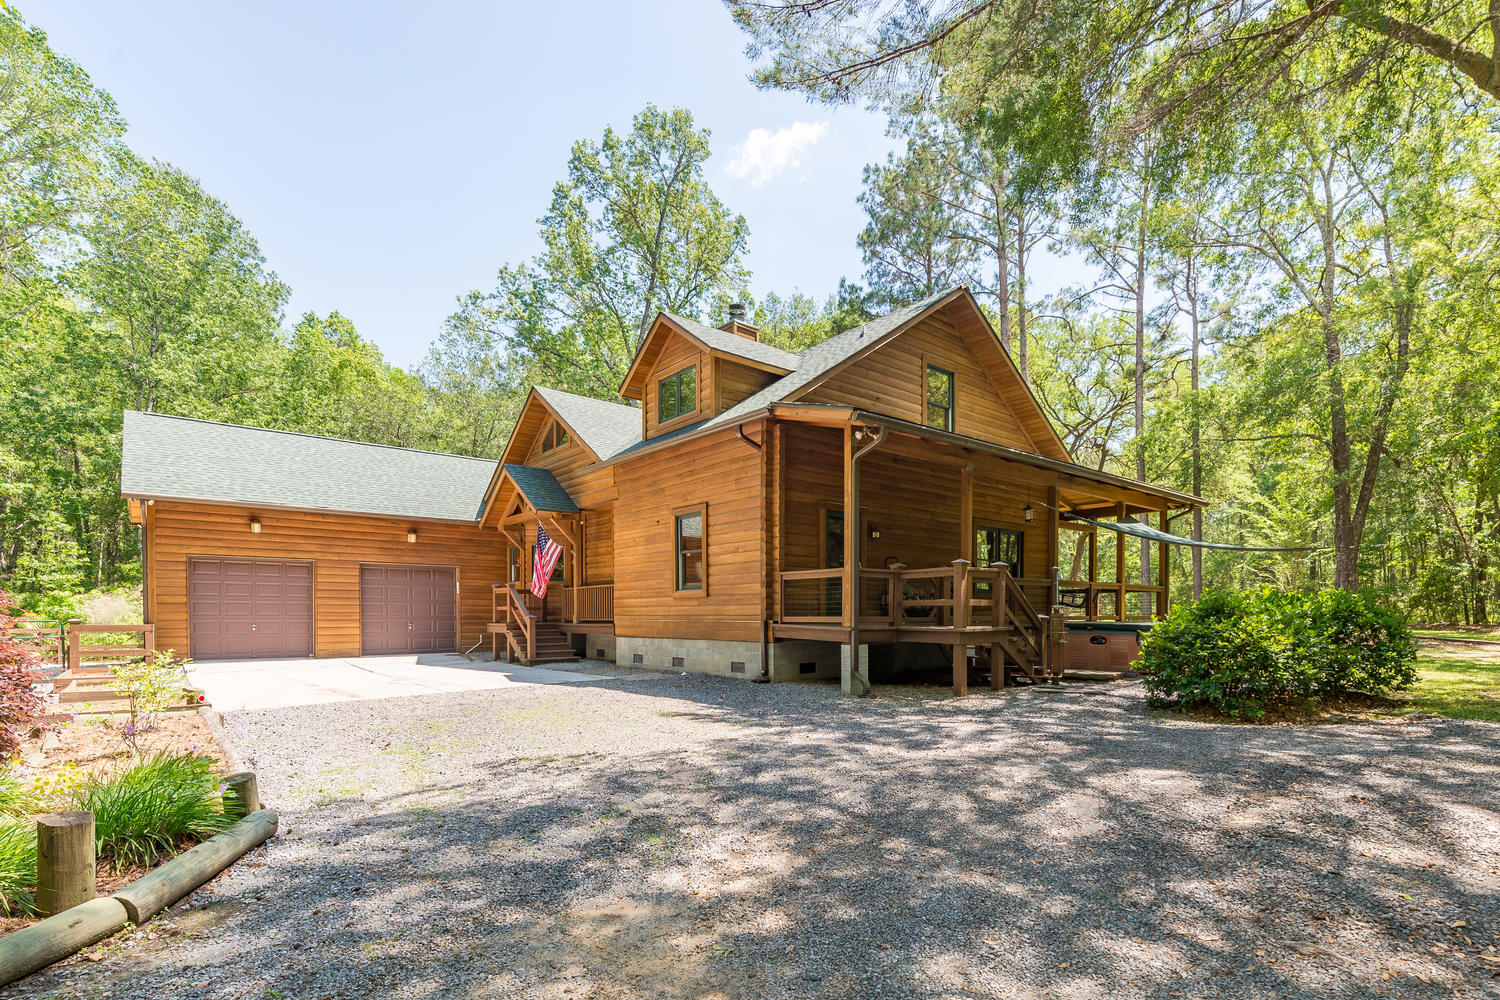 Photo of 5398 Ceva Dr, Hollywood, SC 29449